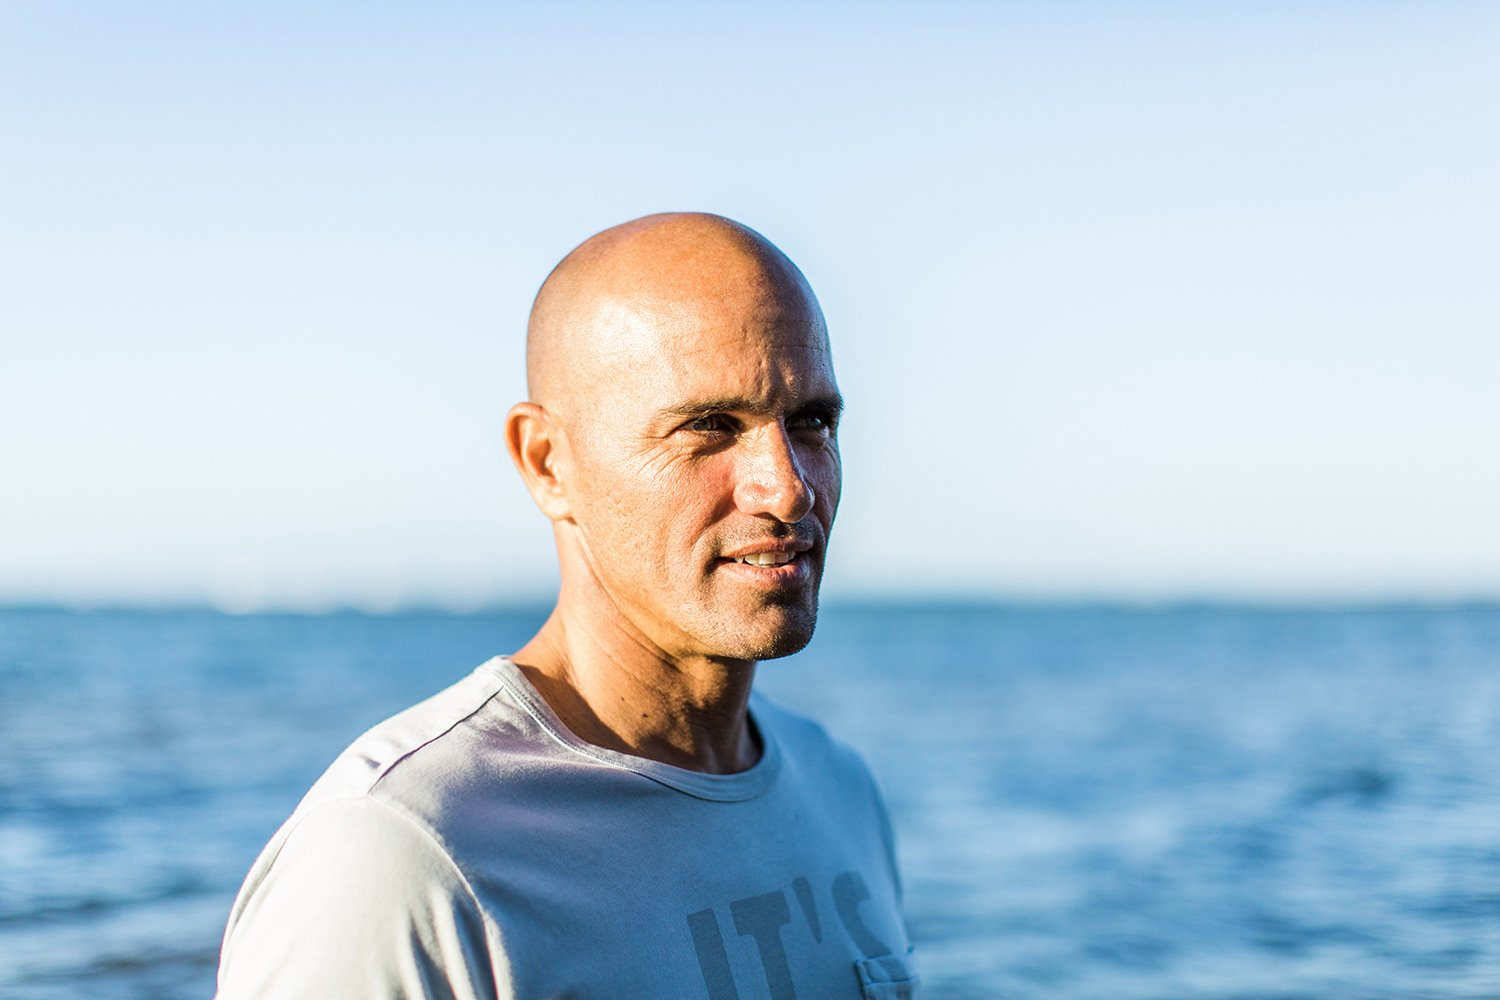 Photo 2 of 5 in Road-tripping Kauai with Pro Surfer Kelly Slater